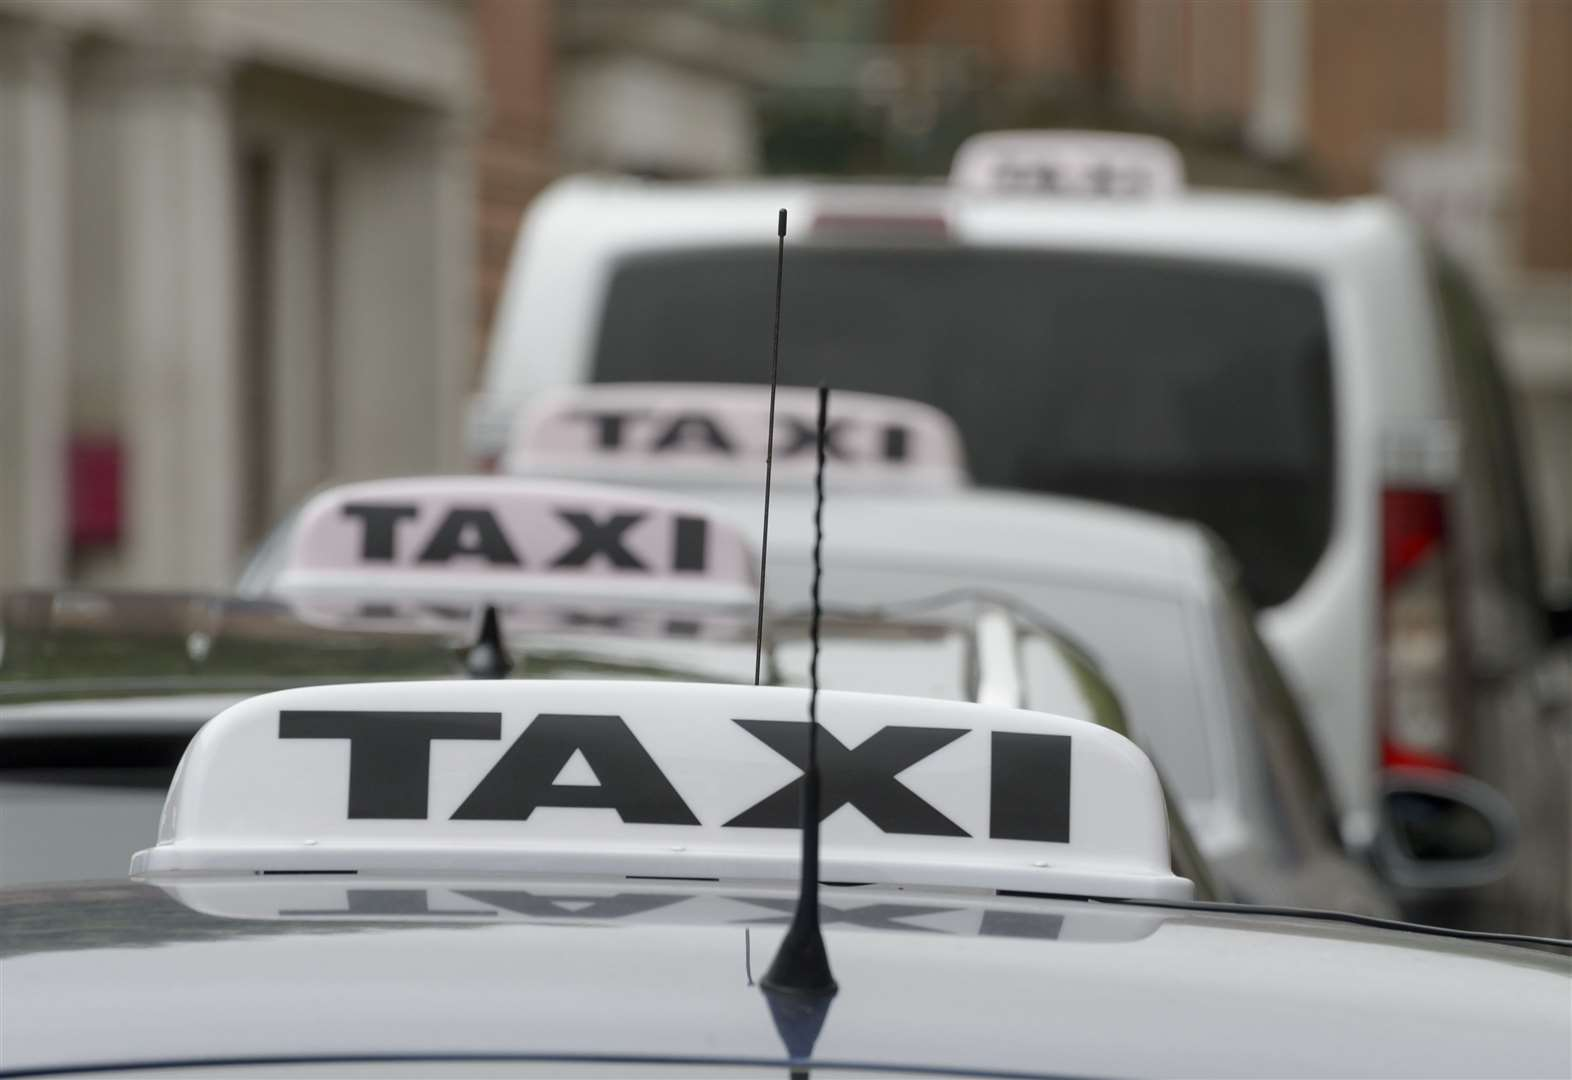 Taxi passenger 'held hostage'